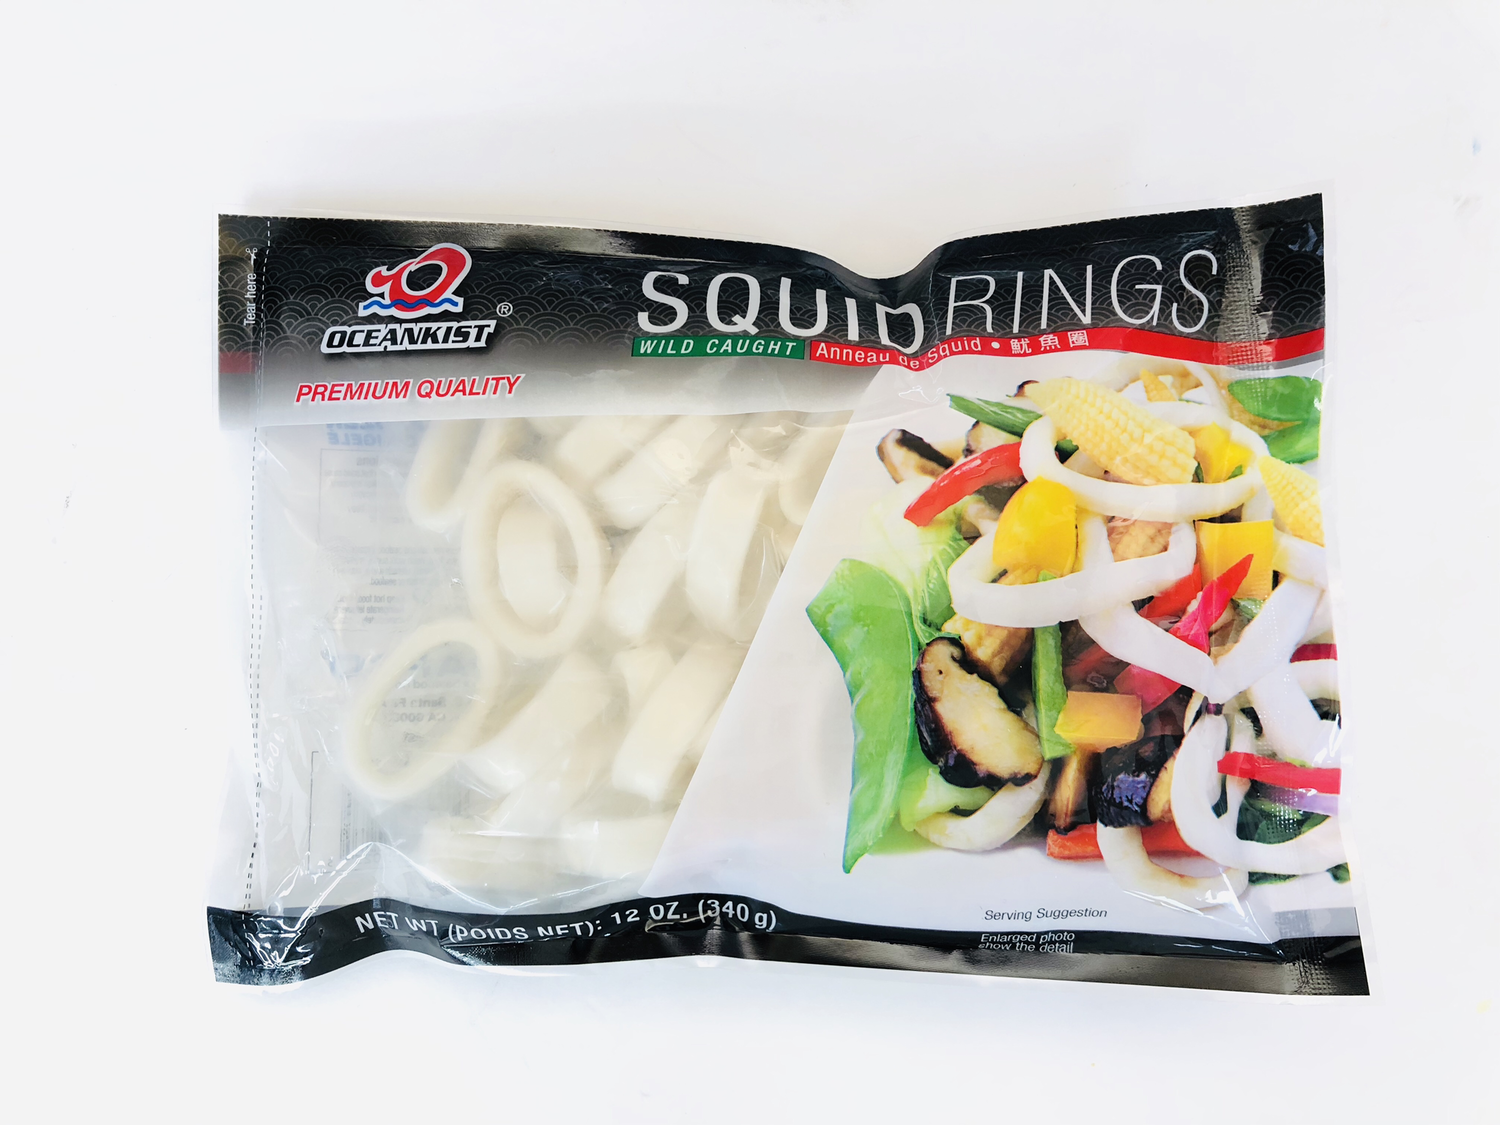 鱿鱼圈 OCEANKIST SQUIDRINGS 12OZ.(340g)